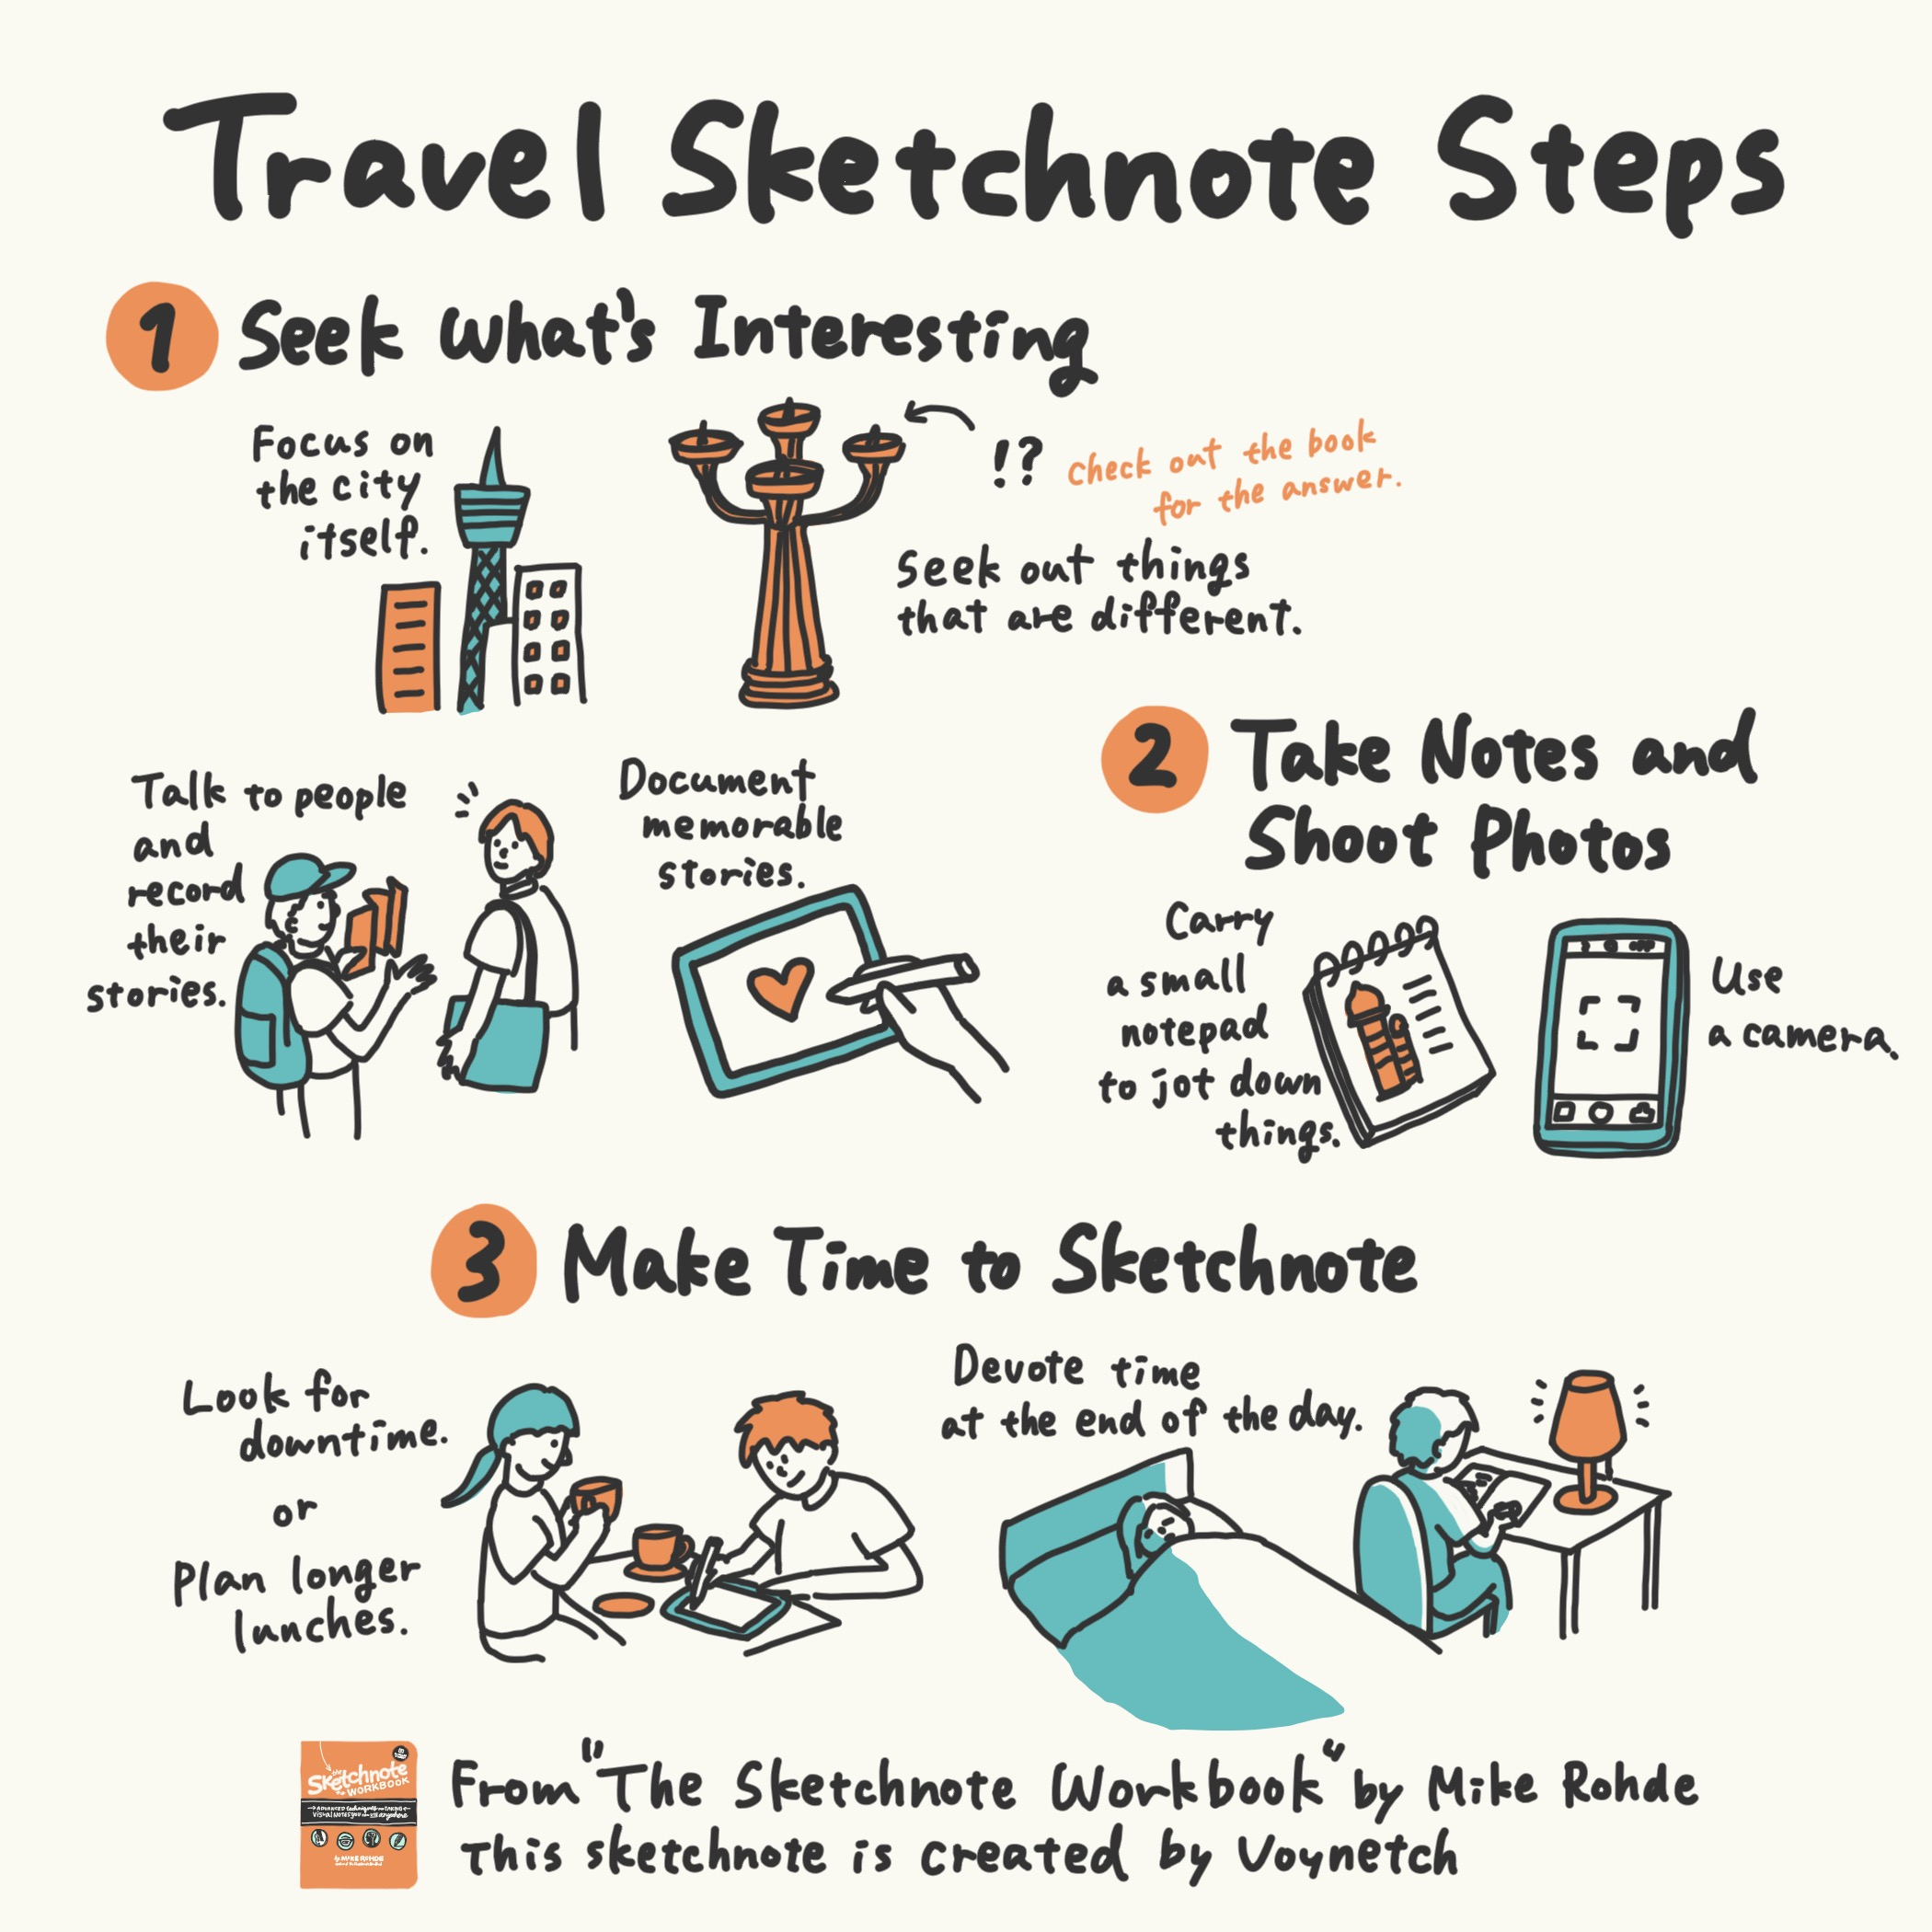 Travel Sketchnote Steps Image